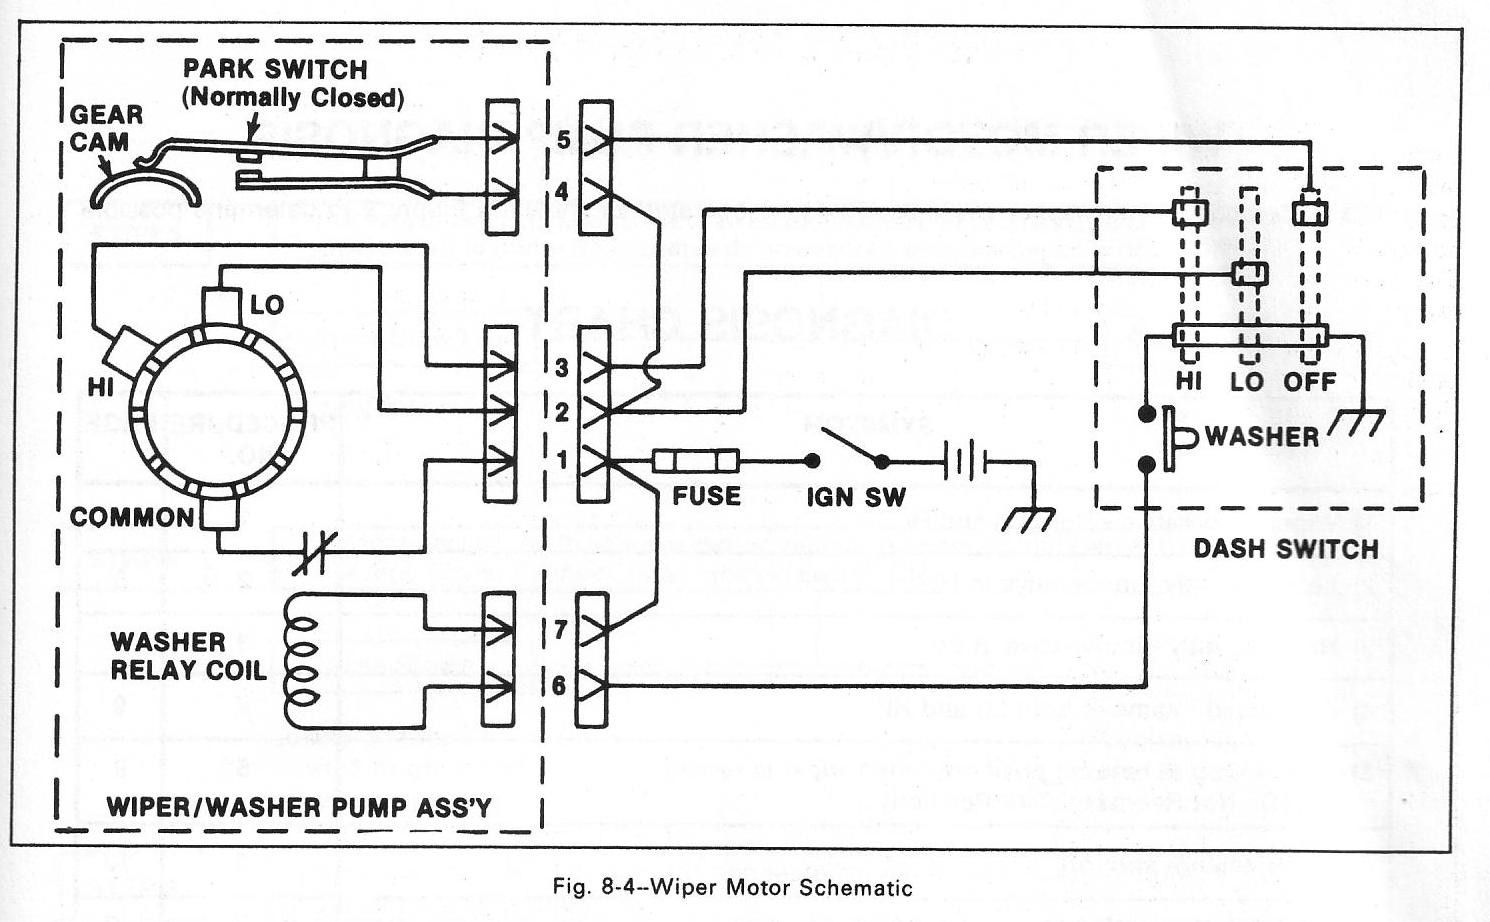 5 Wire Motor Wiring Diagram from i.pinimg.com